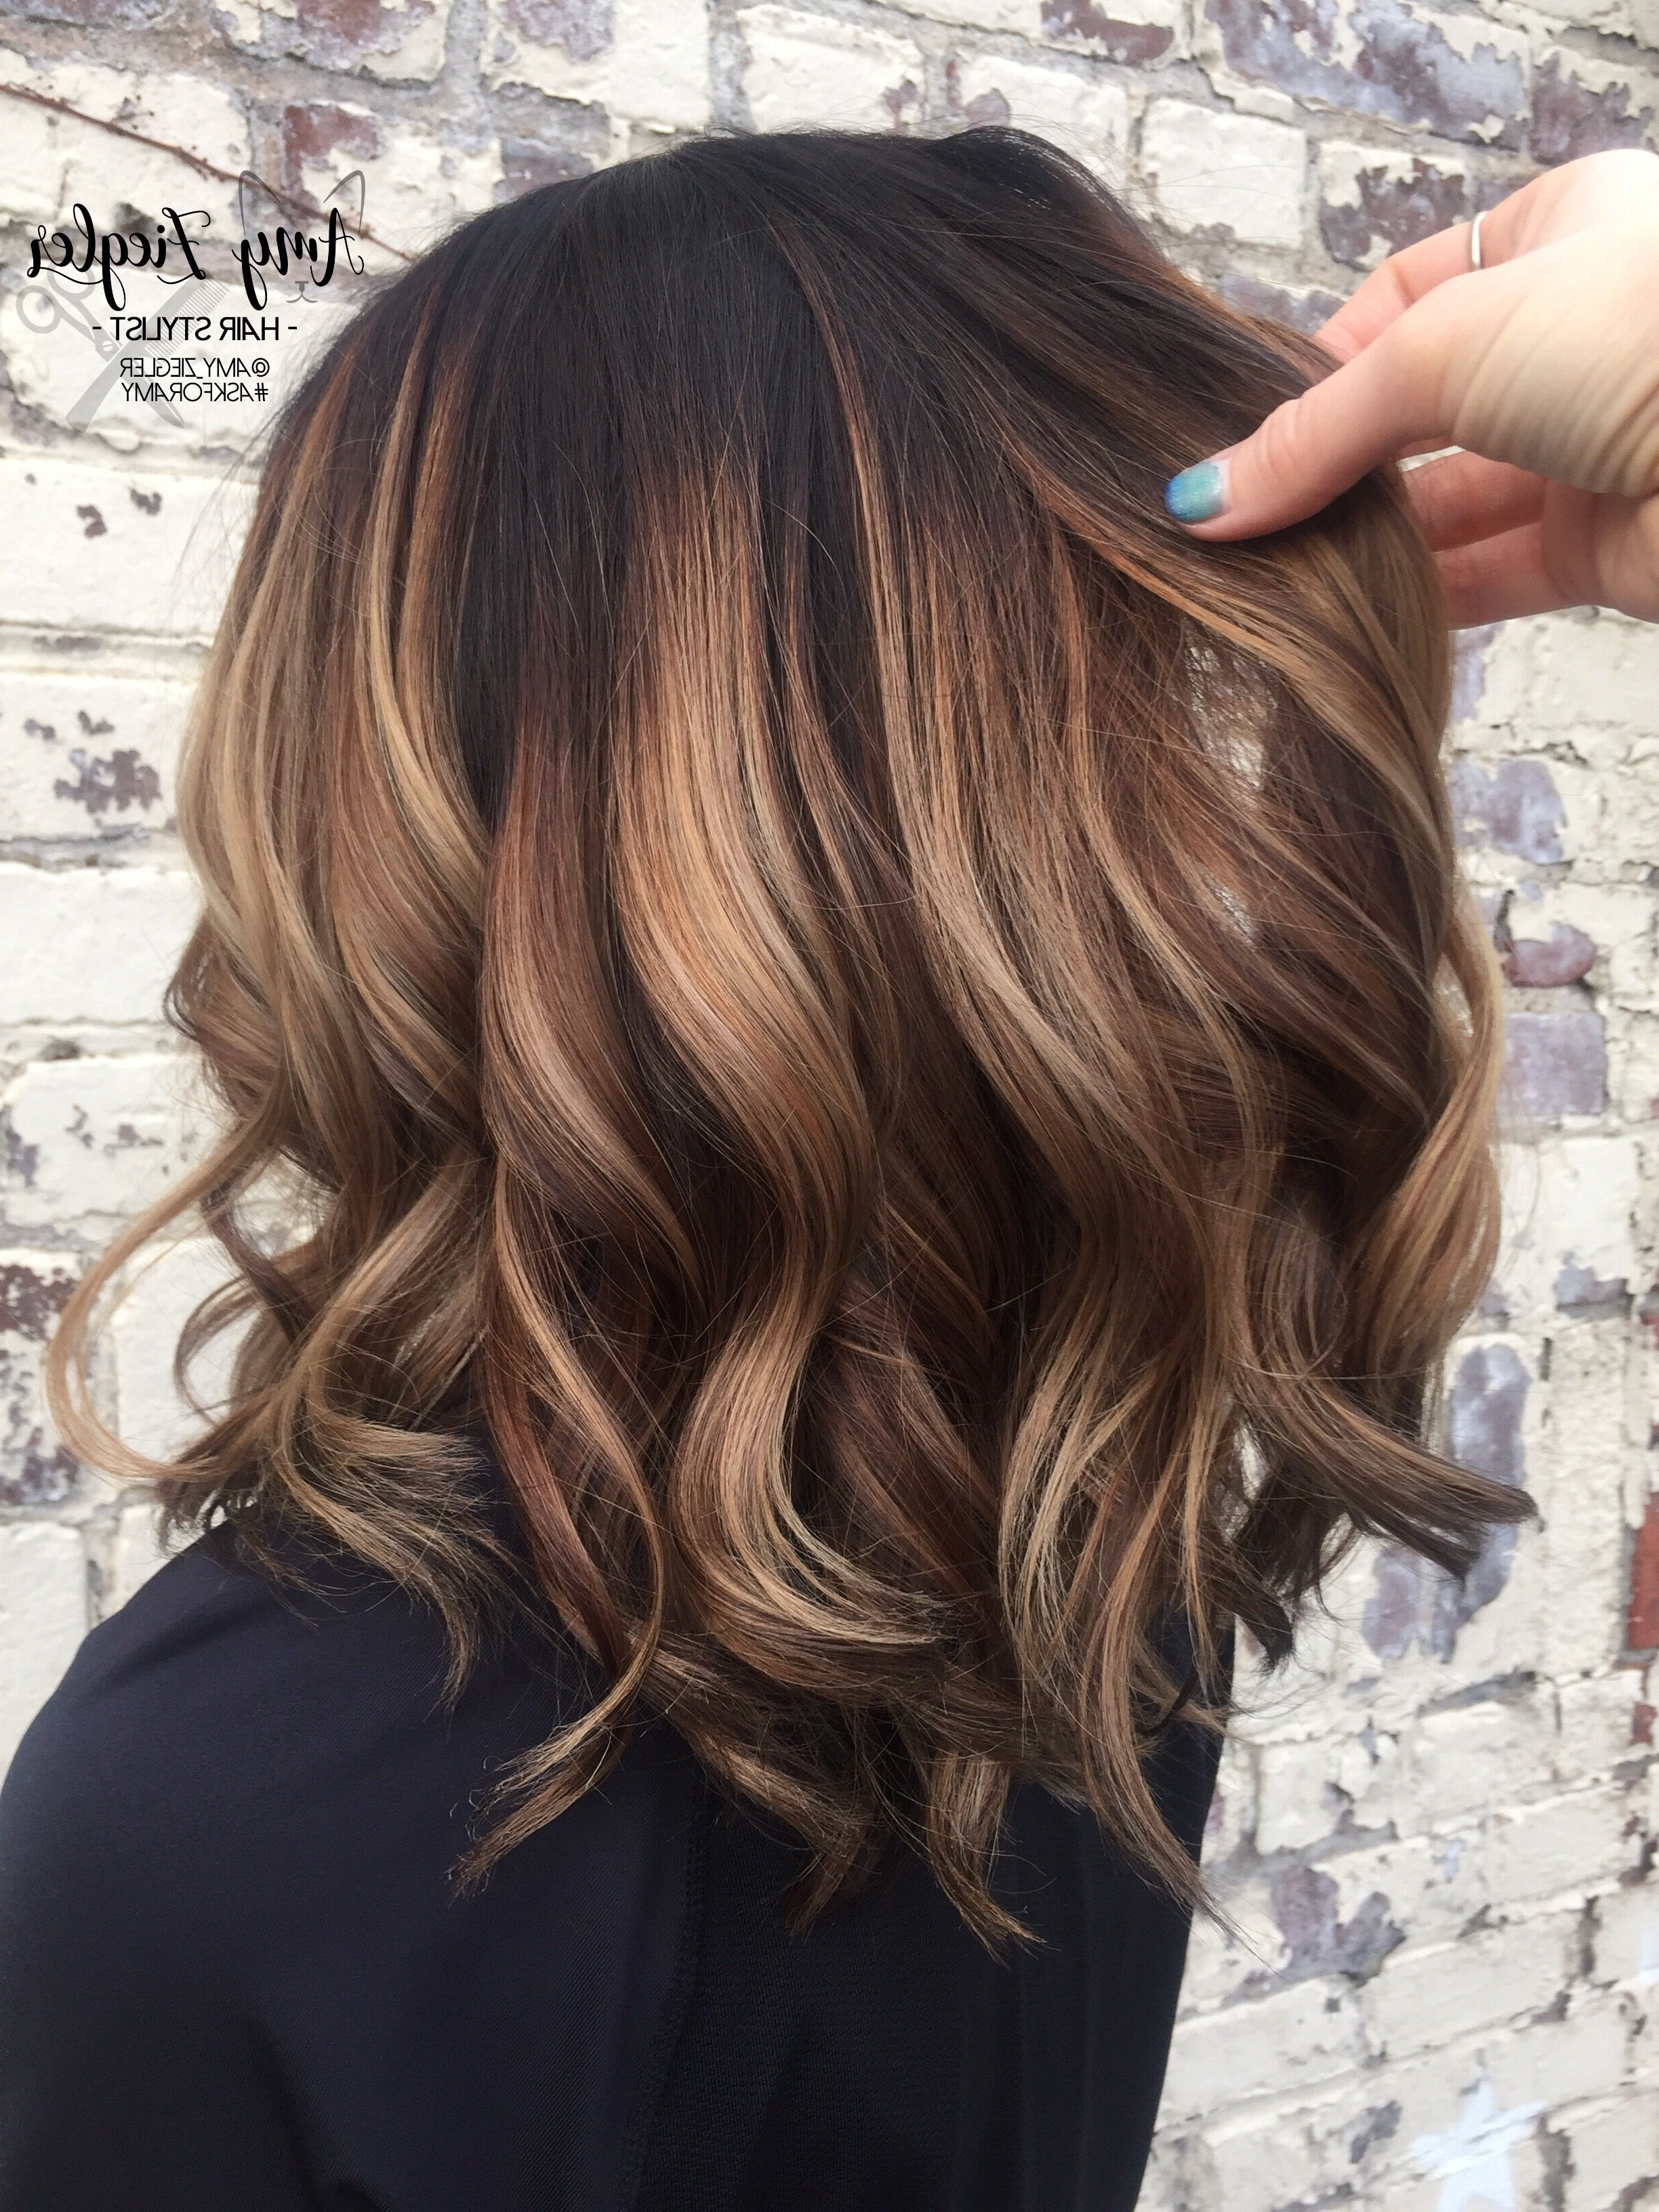 Chunky Blonde Balayage On Dark Hair@askforamy #askforamy Throughout Recent Shaggy Pixie Hairstyles With Balayage Highlights (View 9 of 20)